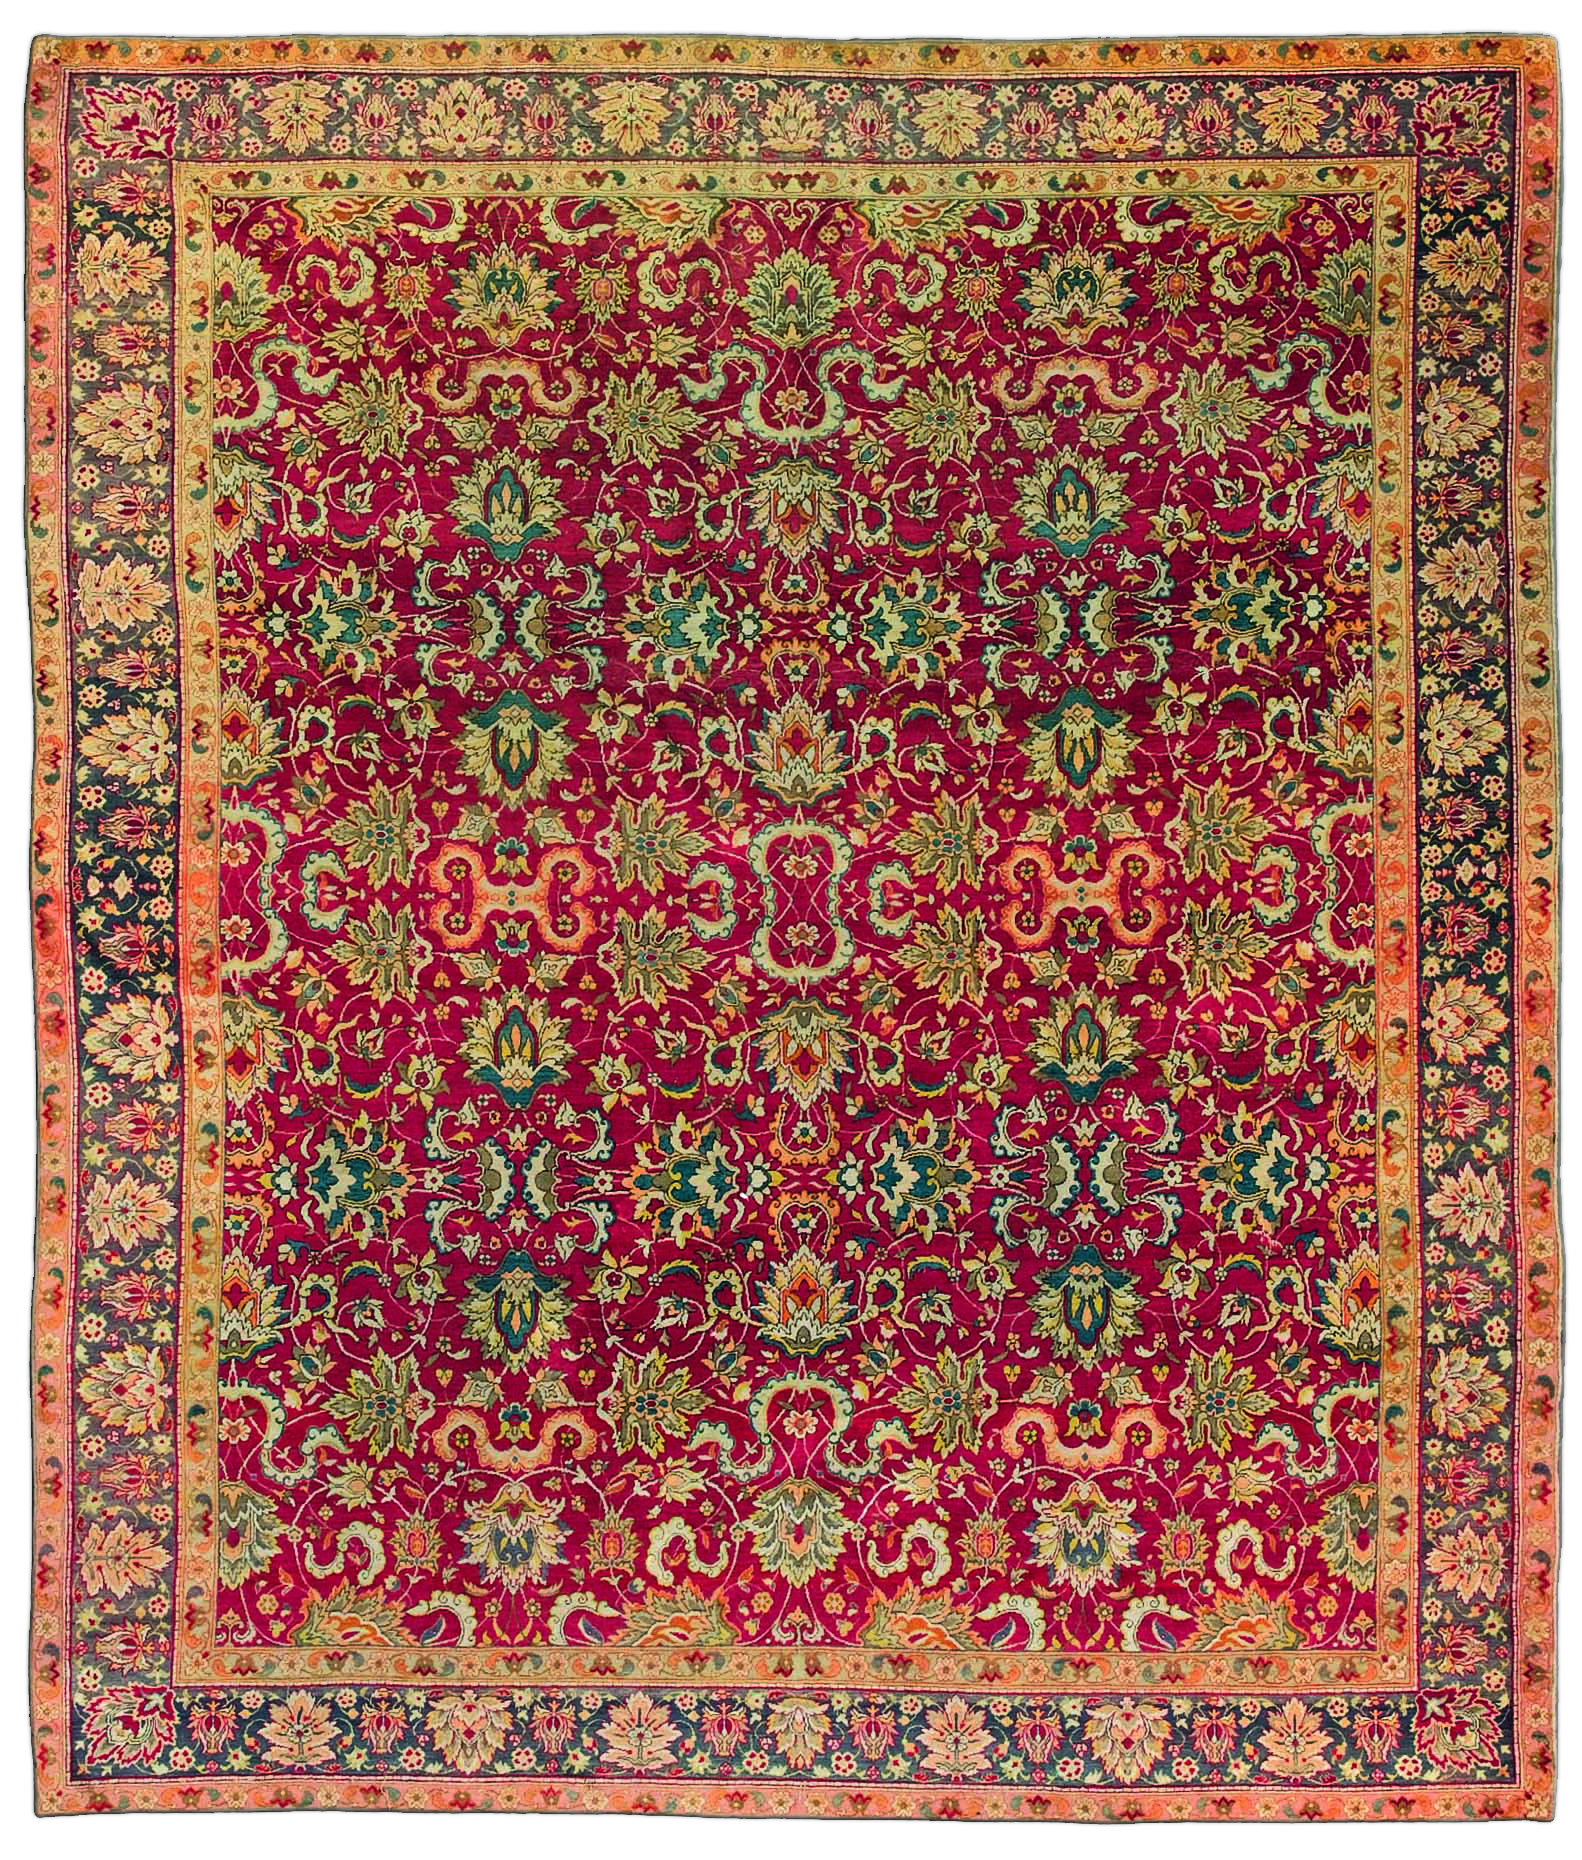 Antique Turkish Silk Rug: Antique Turkish Hereke Rug BB3567 By Doris Leslie Blau